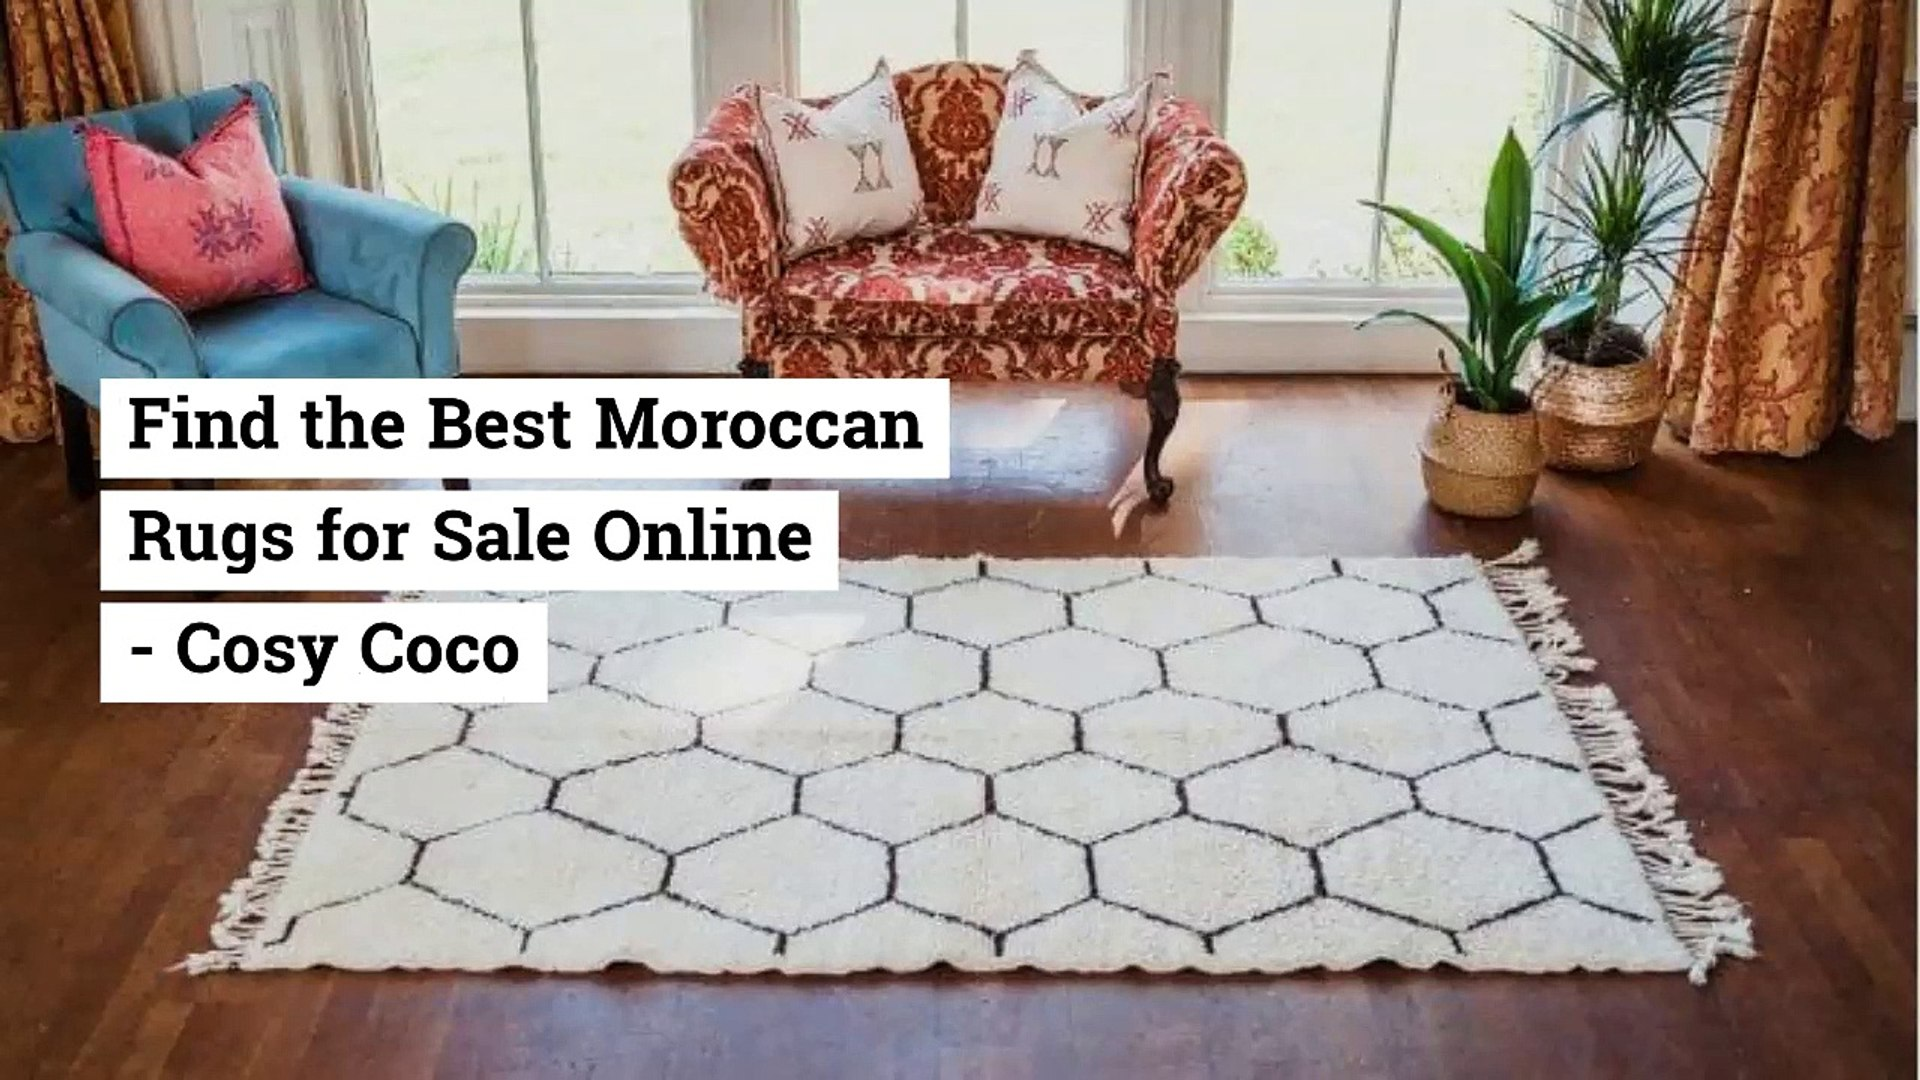 Moroccan Rugs For Online